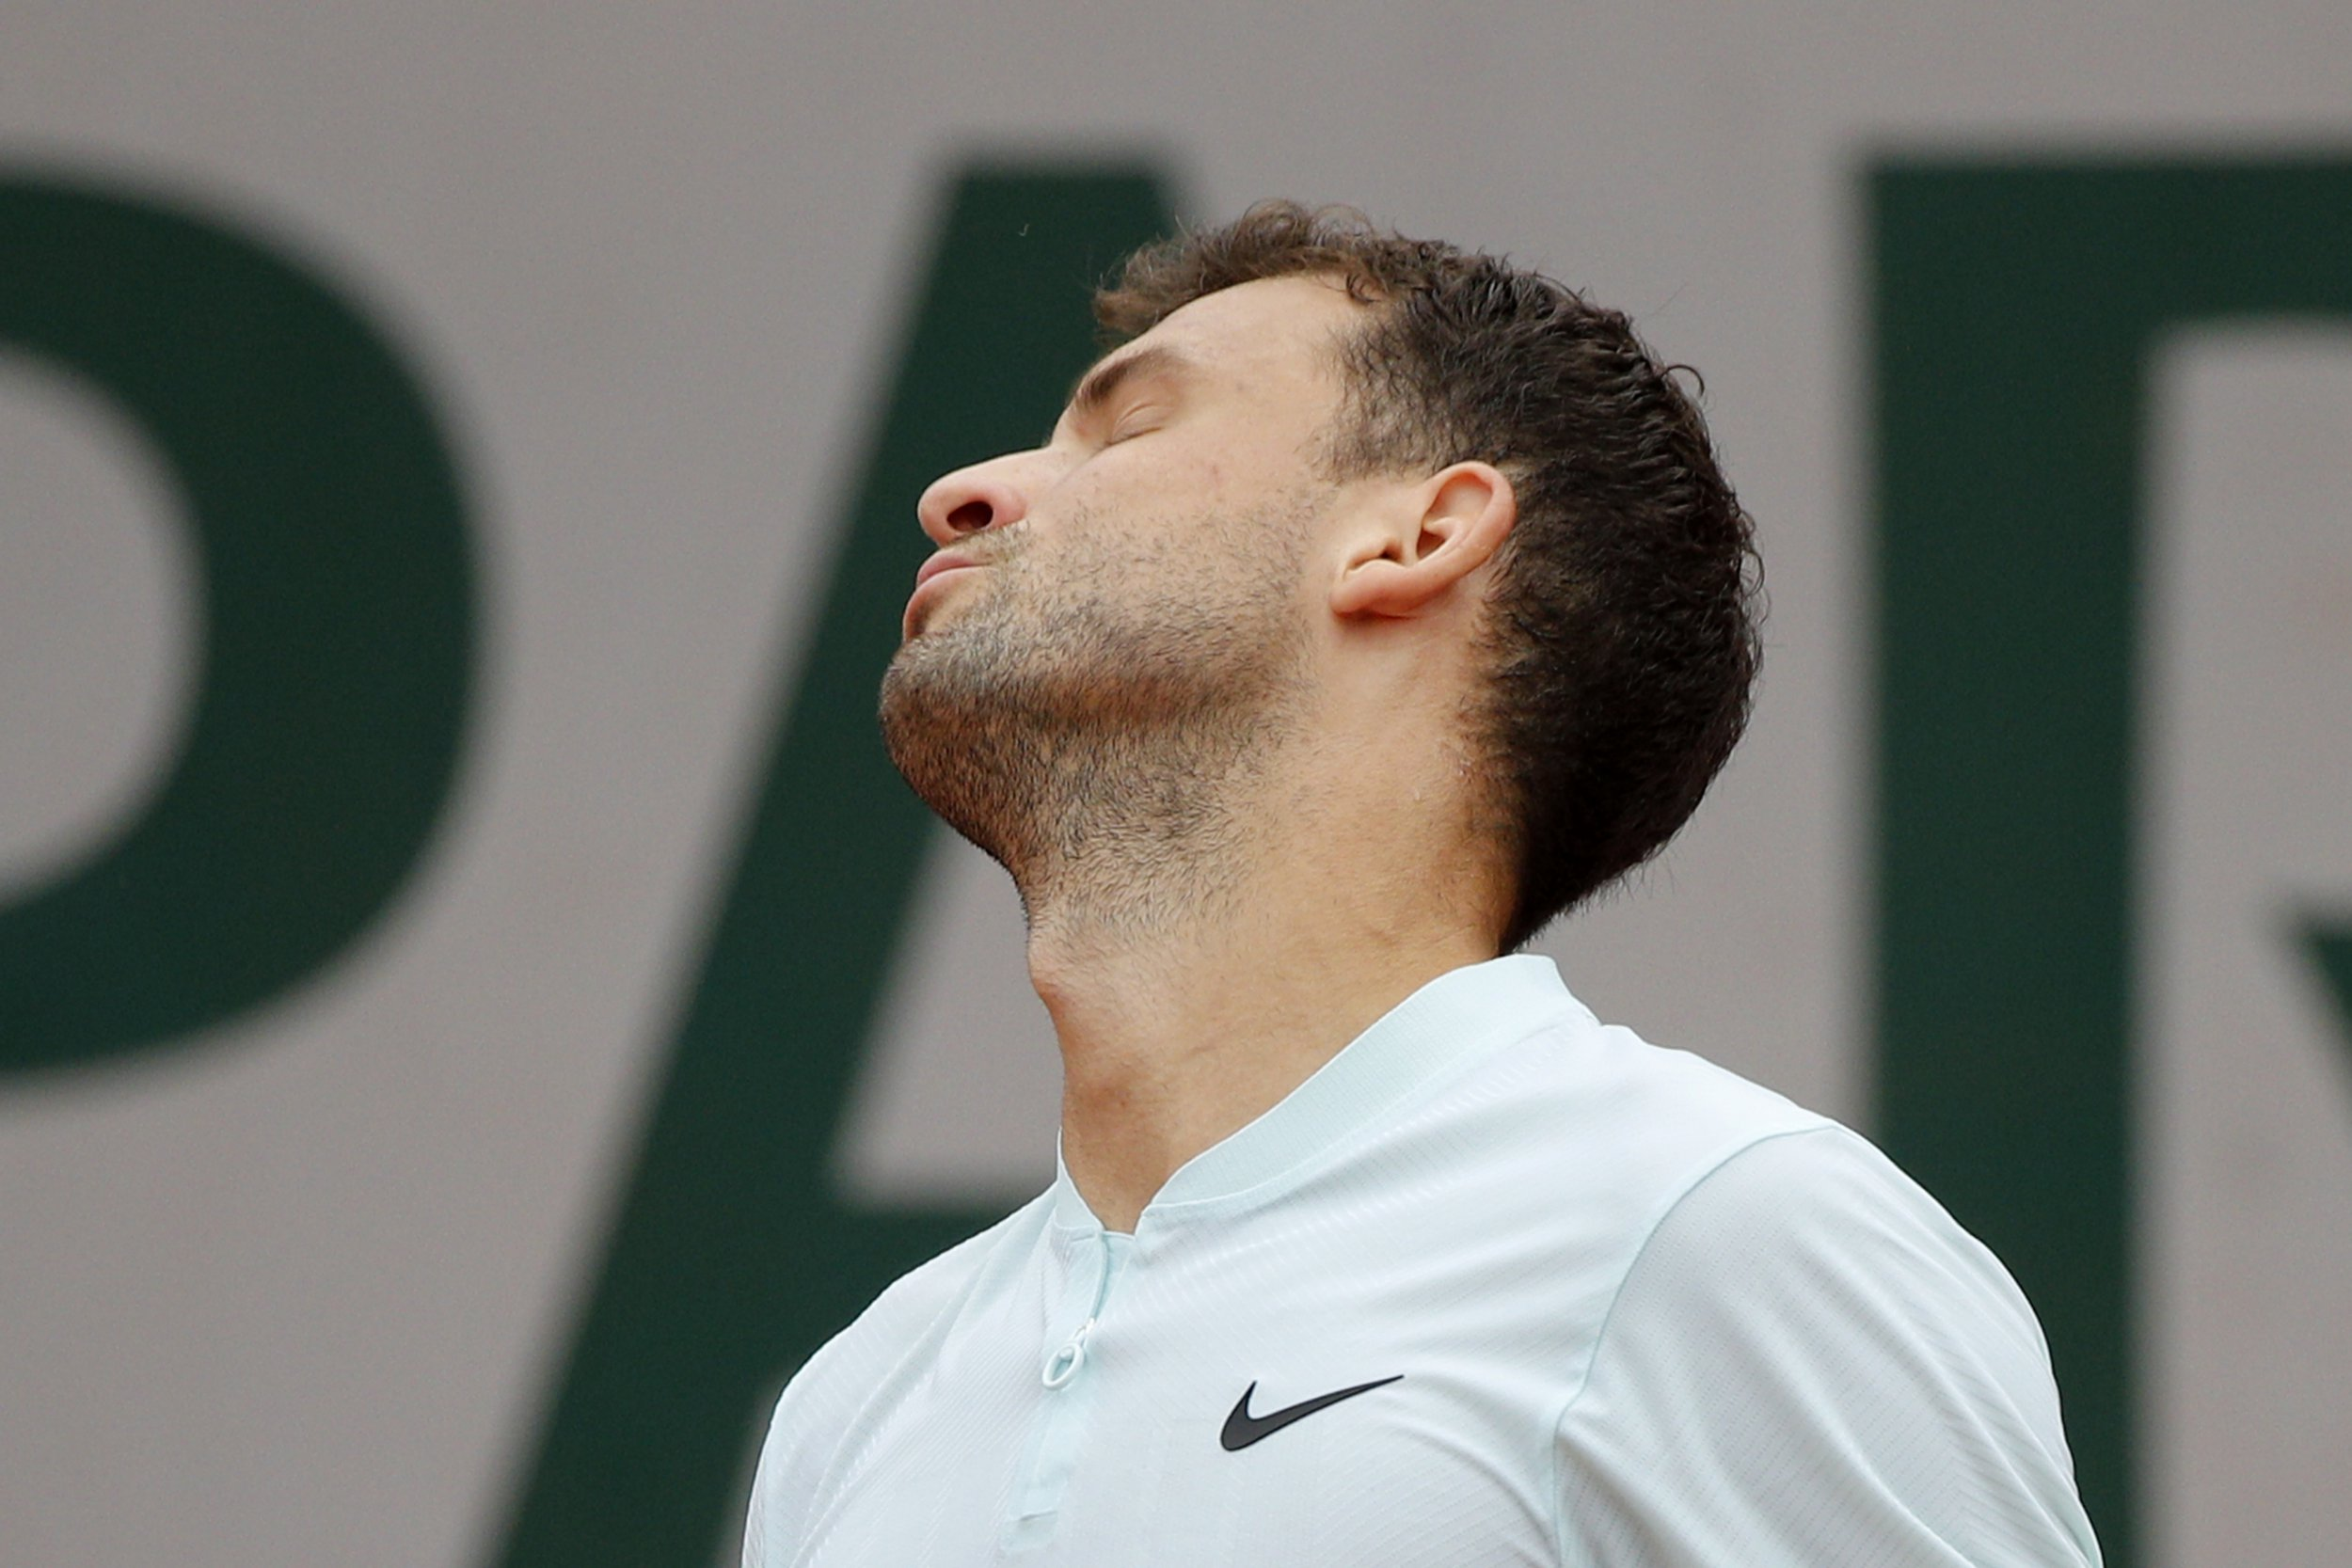 Fourth seed Grigor Dimitrov speaks out on latest early French Open exit